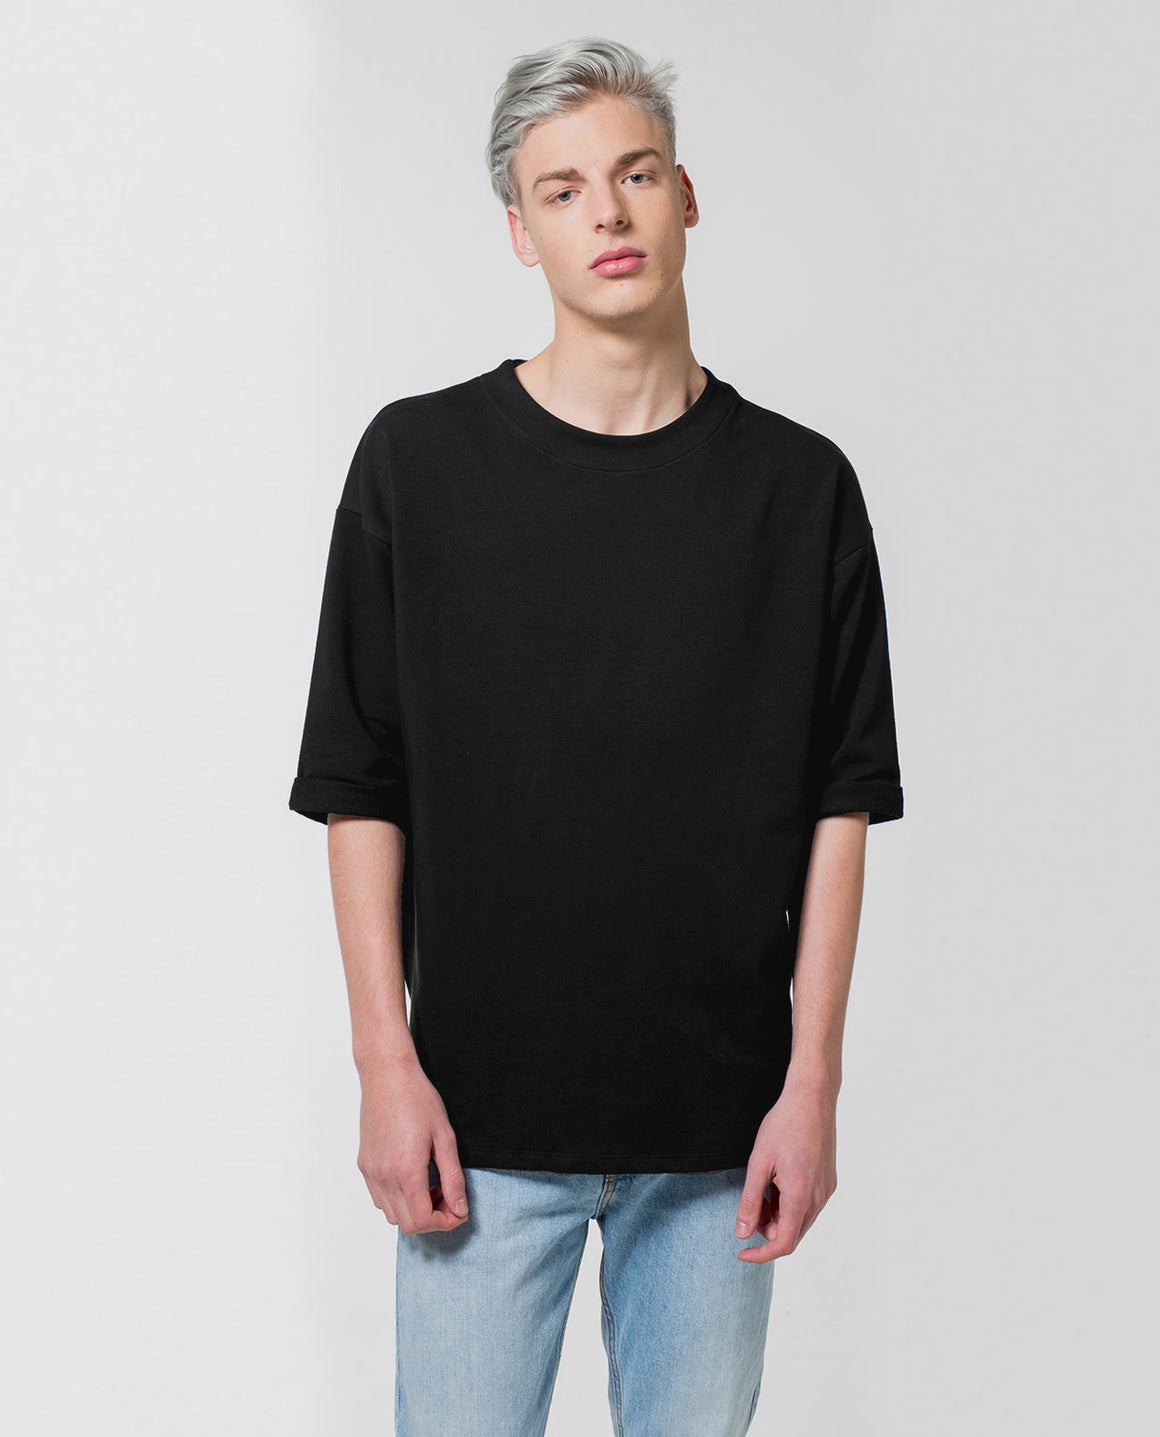 Sweatshirt with Rolled Sleeves Black